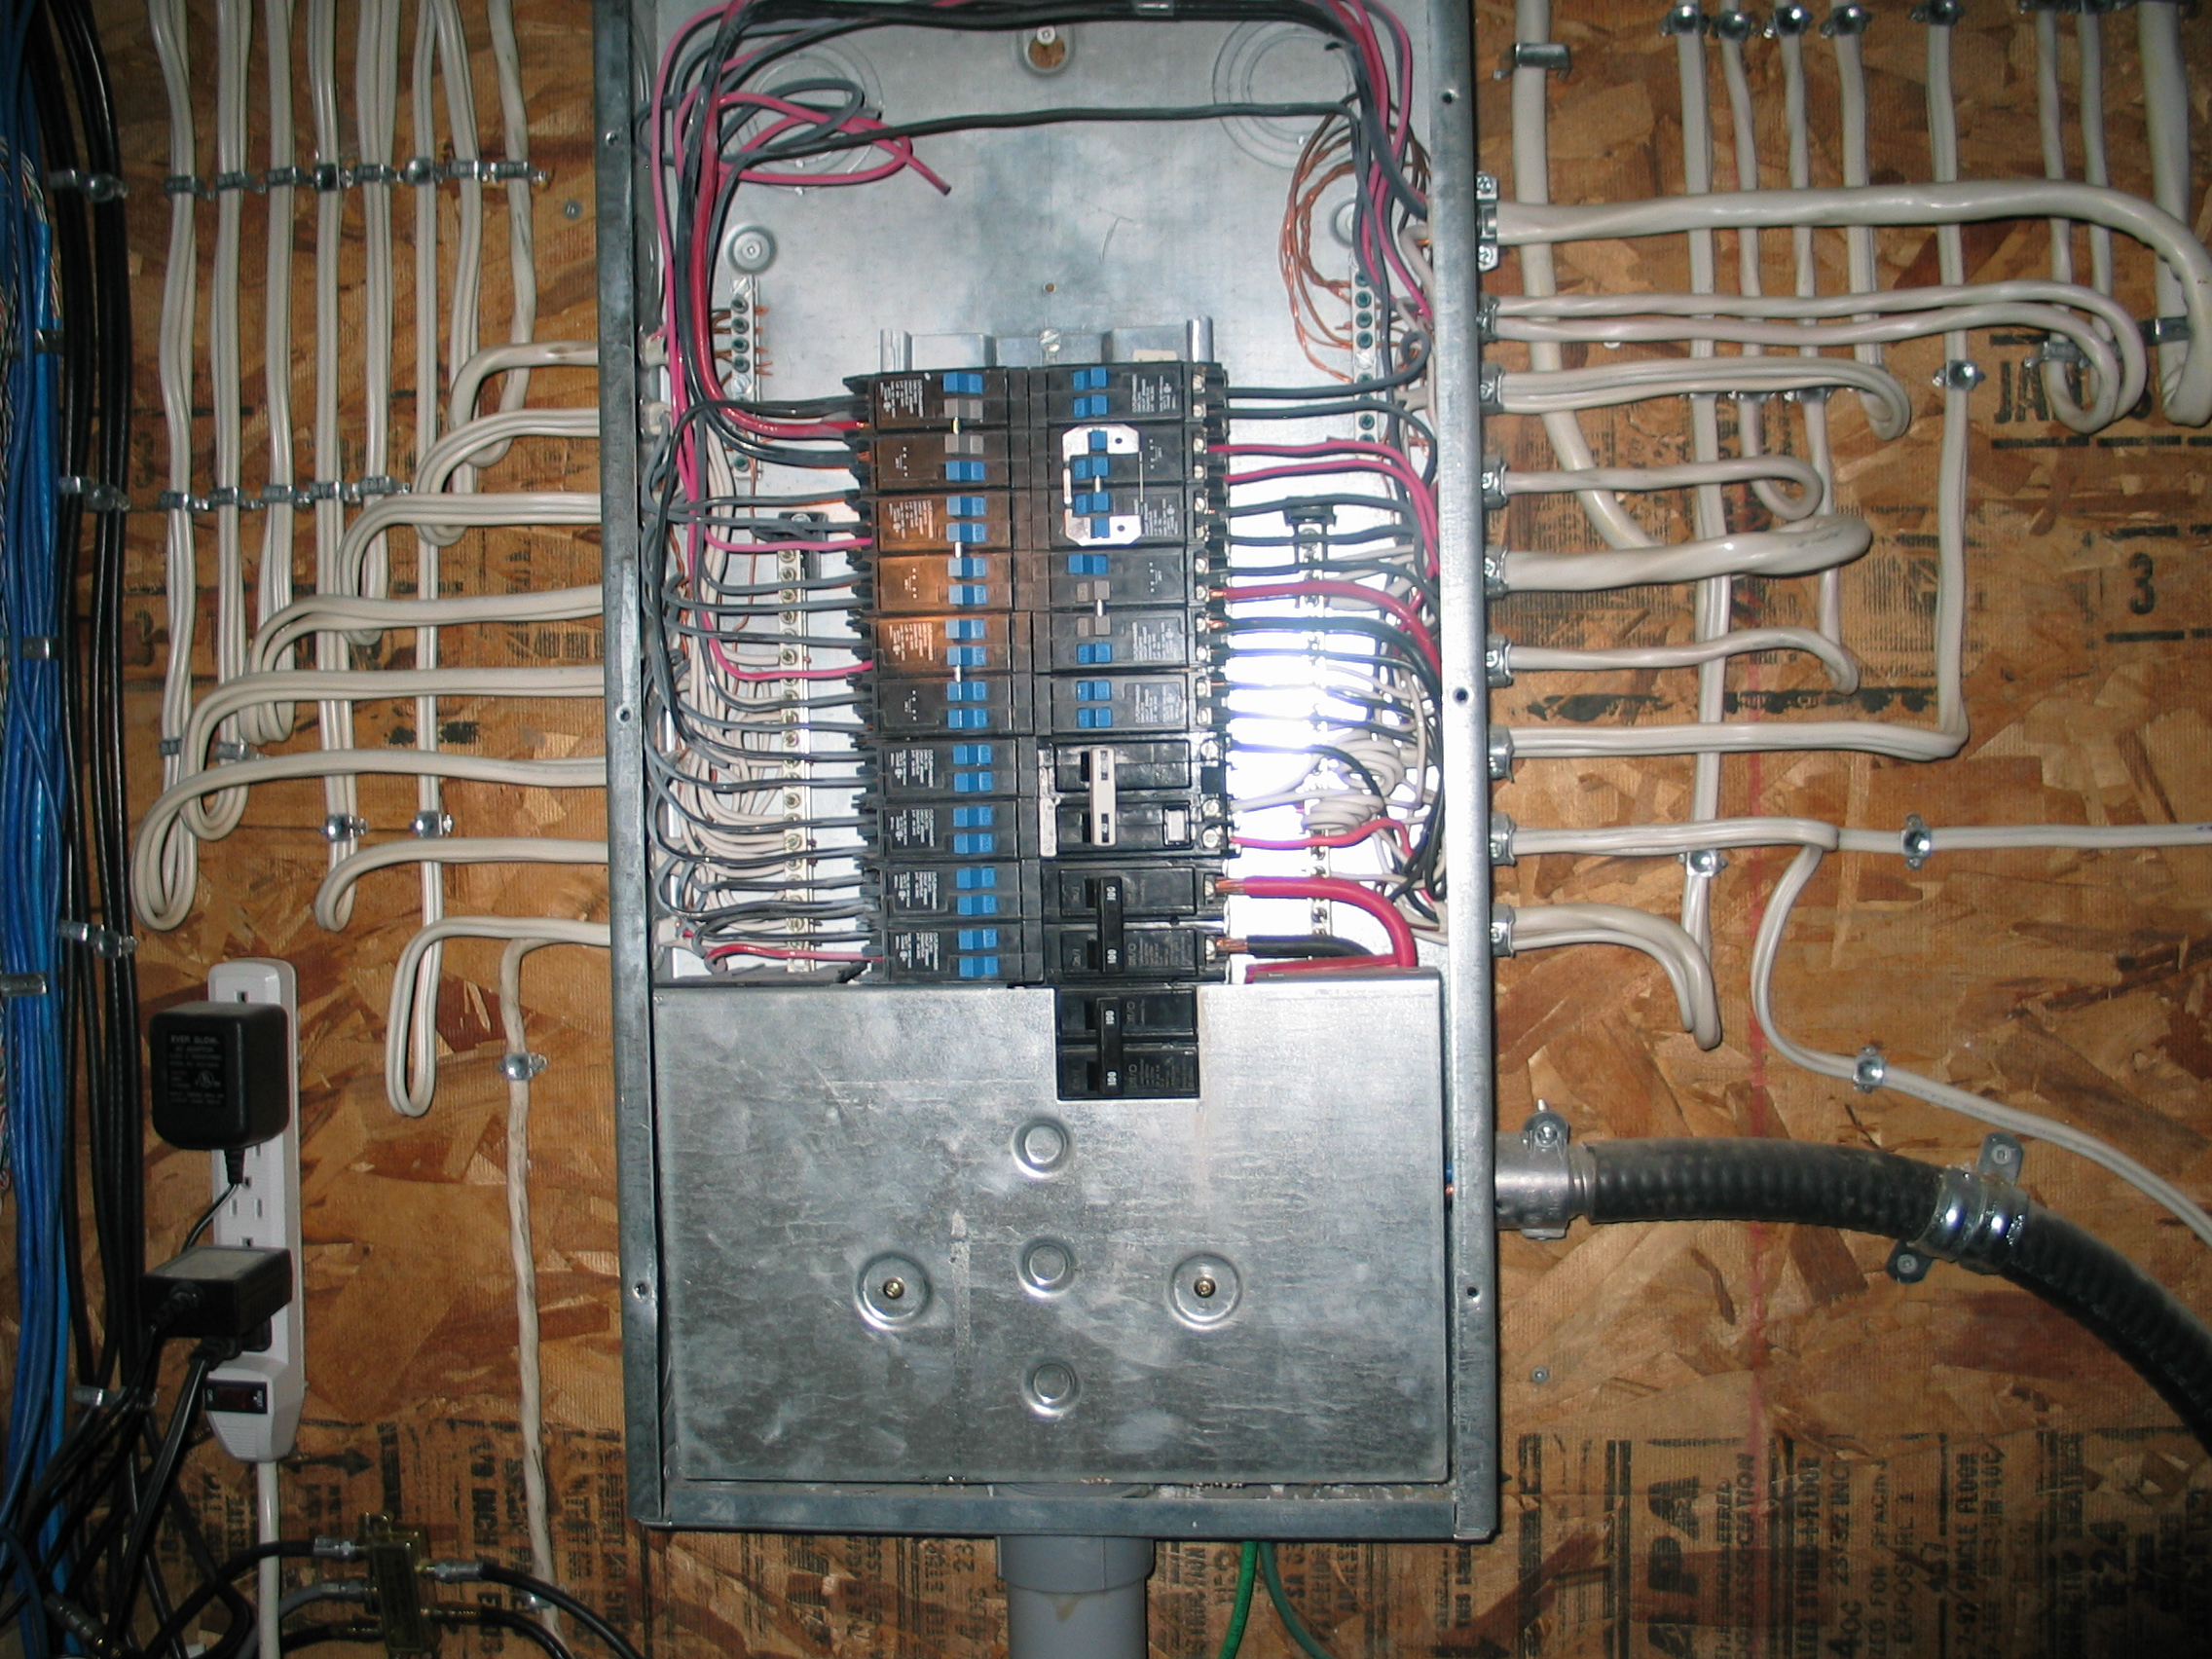 Astonishing 3 Phase Breaker Panel Wiring Wiring Diagrams Lol Wiring Cloud Eachirenstrafr09Org